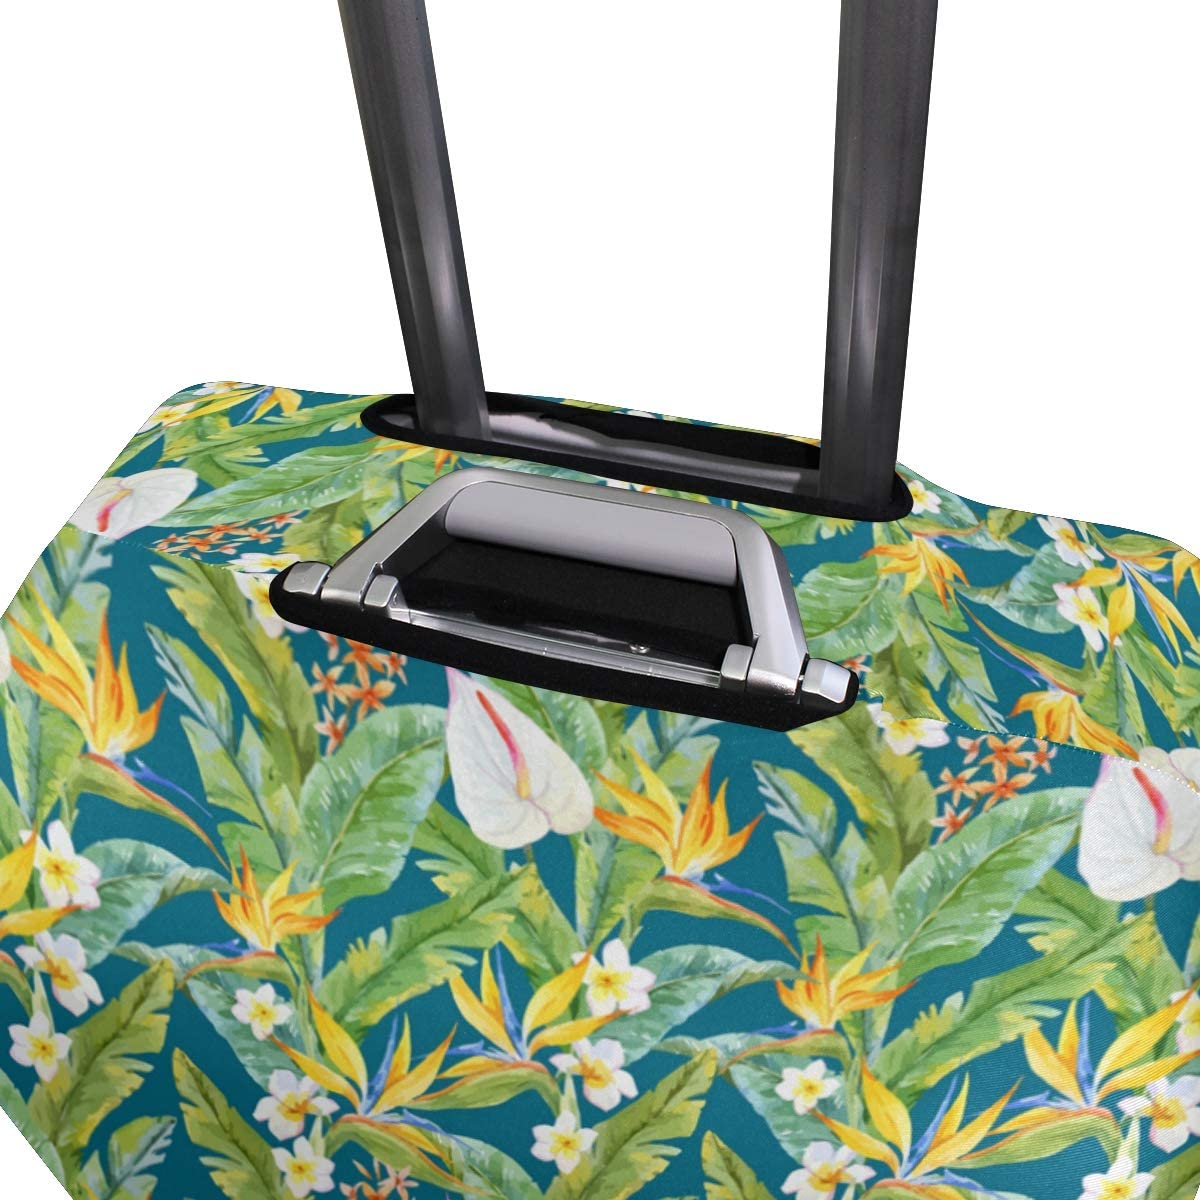 Banana Leaf Shade Traveler Lightweight Rotating Luggage Protector Case Can Carry With You Can Expand Travel Bag Trolley Rolling Luggage Protector Case